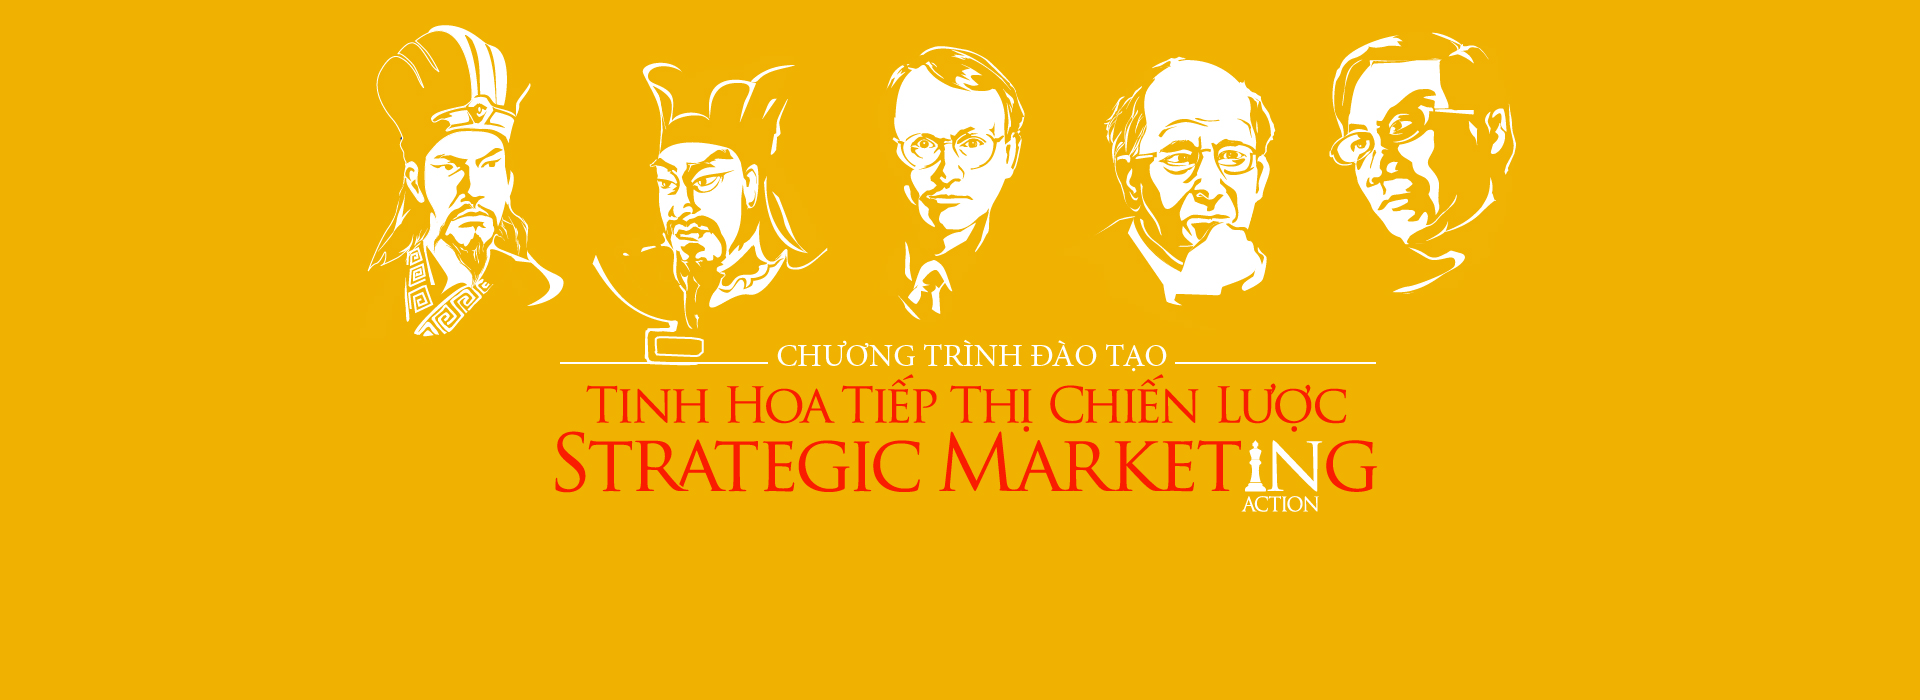 Strategic Marketing 1920x700